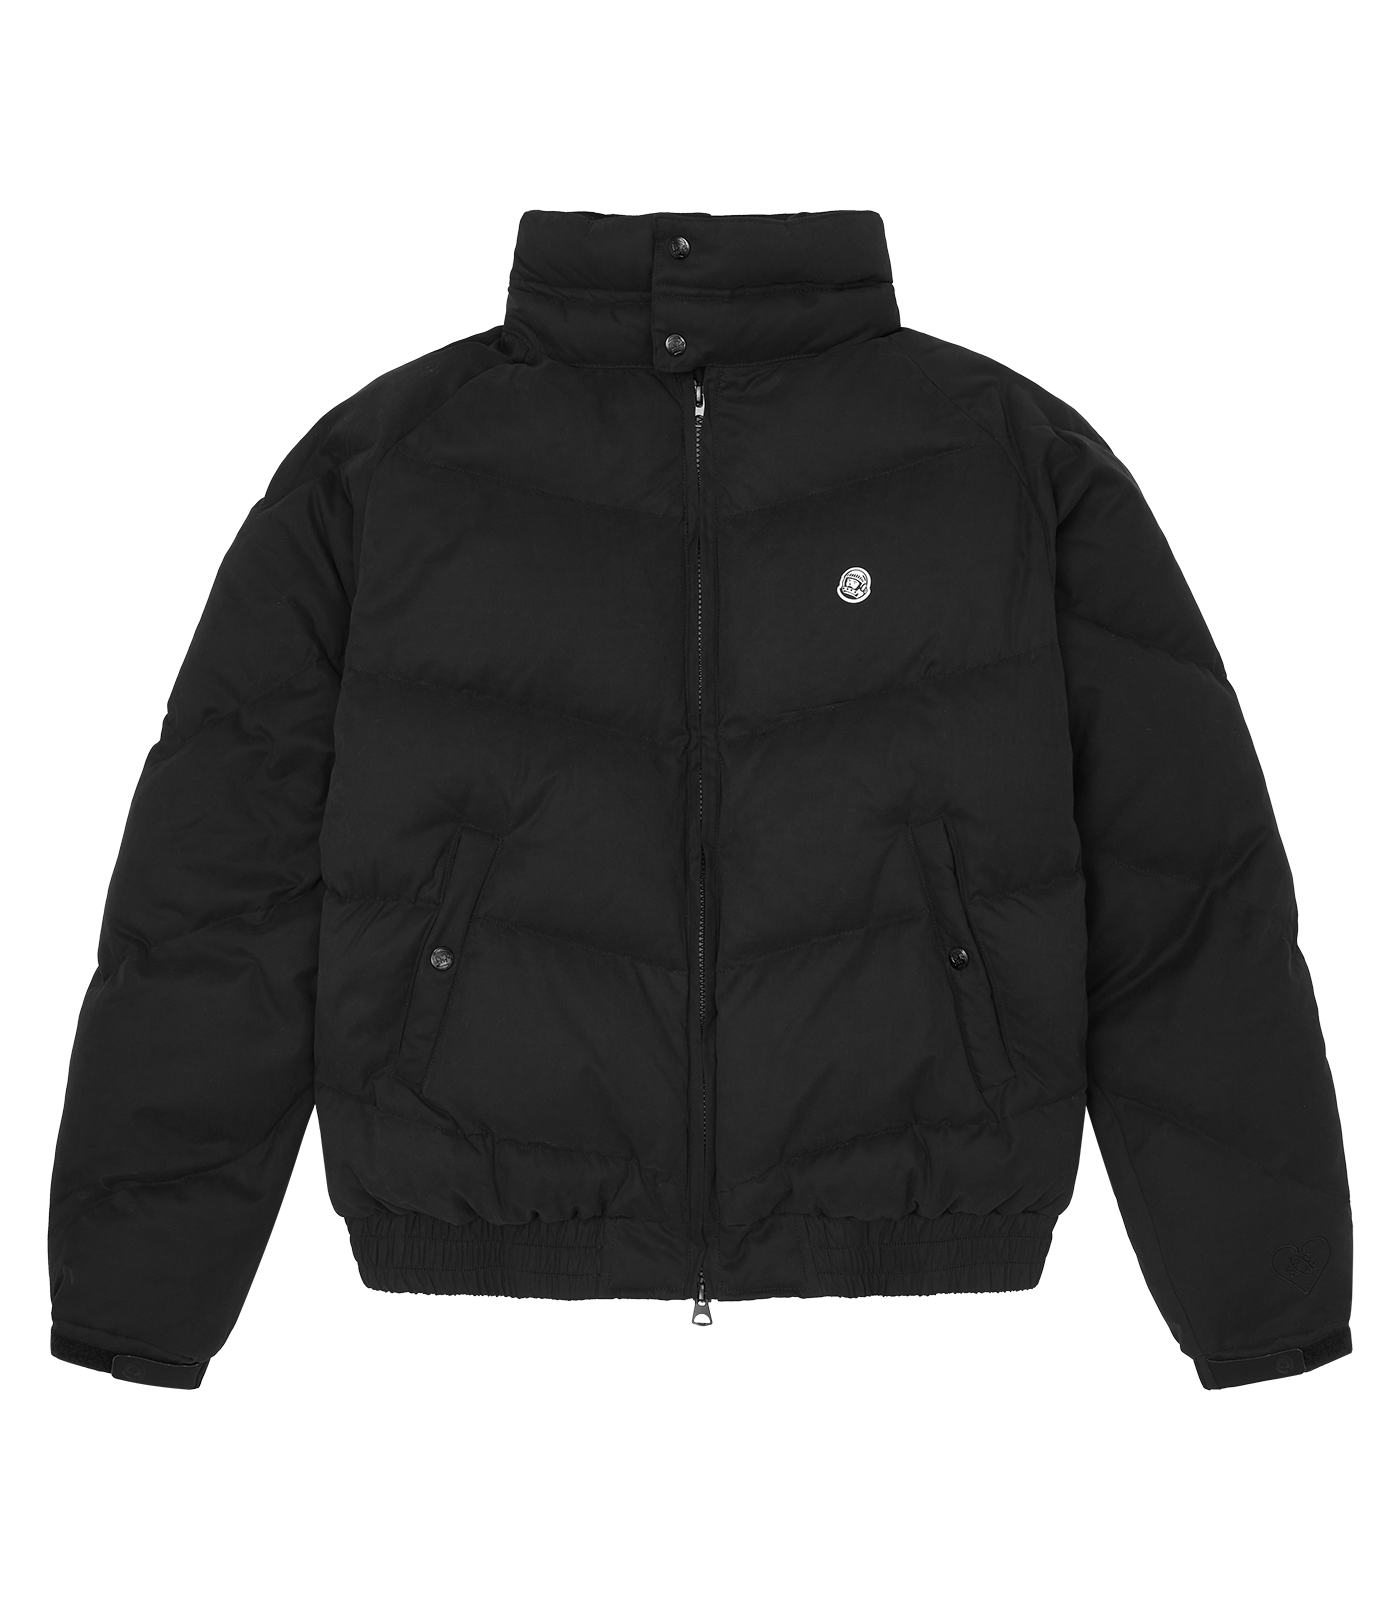 CLASSIC SOFT SHELL DOWN JACKET - BLACK